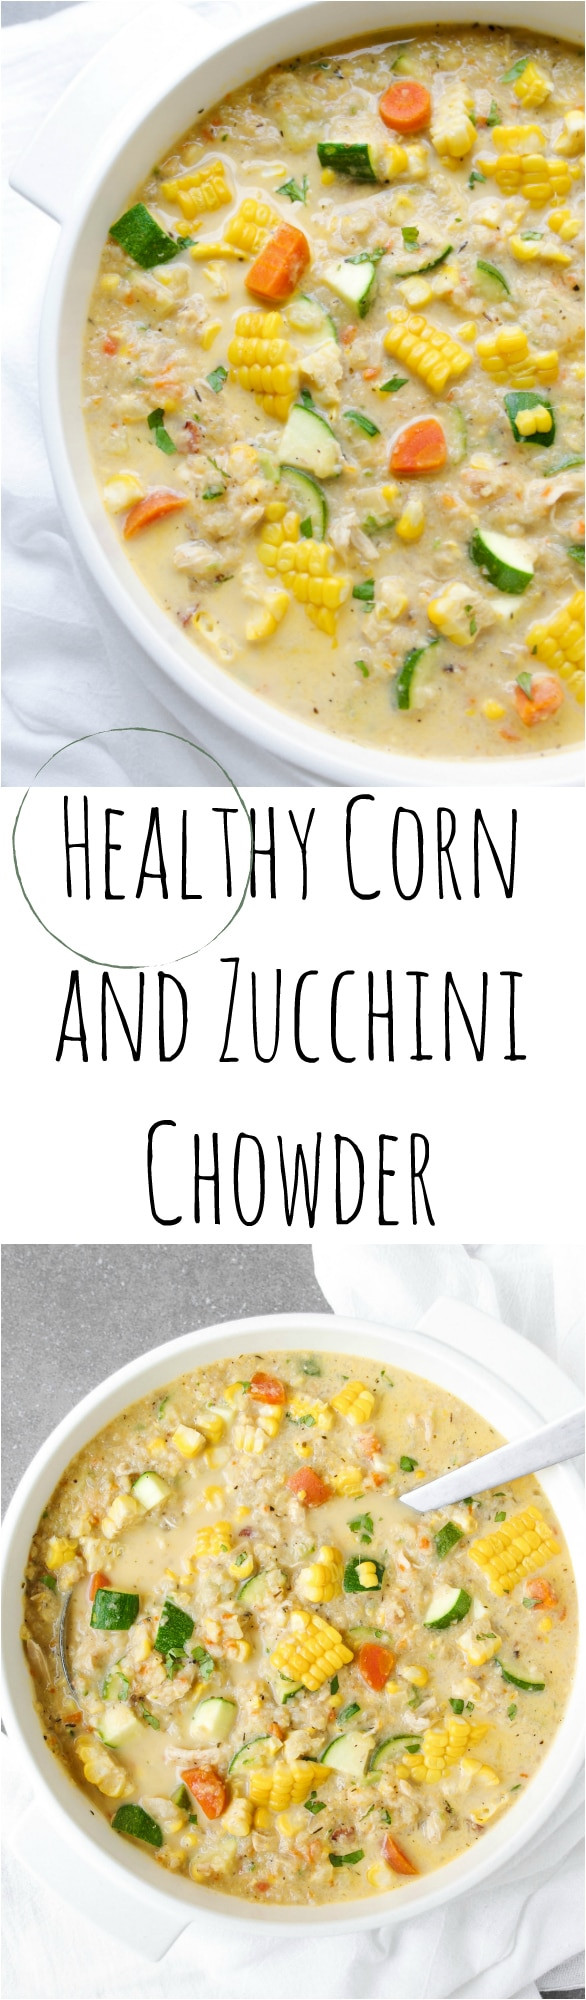 Healthy Corn Chowder  Healthy Corn and Zucchini Chowder The Forked Spoon